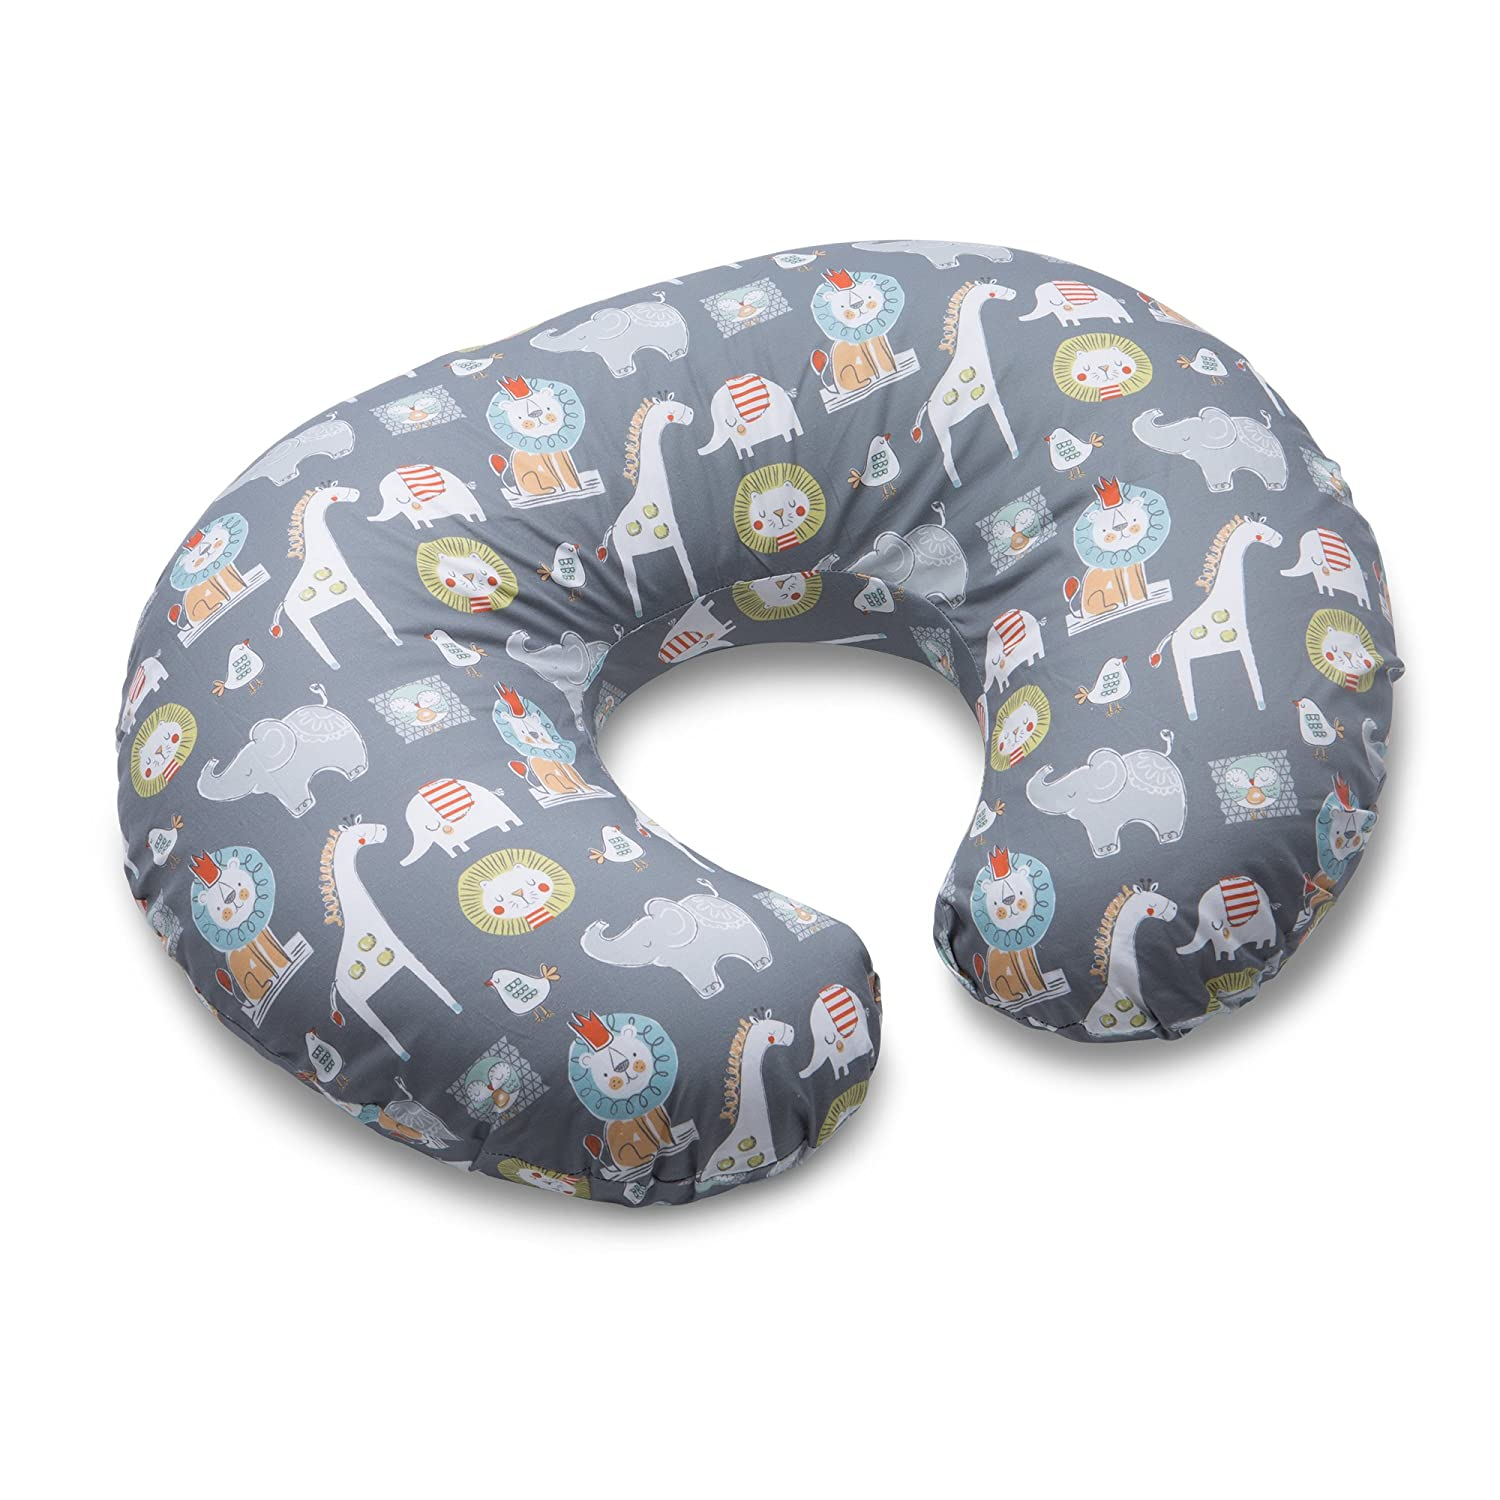 Boppy Nursing Pillow and Positioner, Sketch Slate Gray The Boppy Company 2200706K AMZ